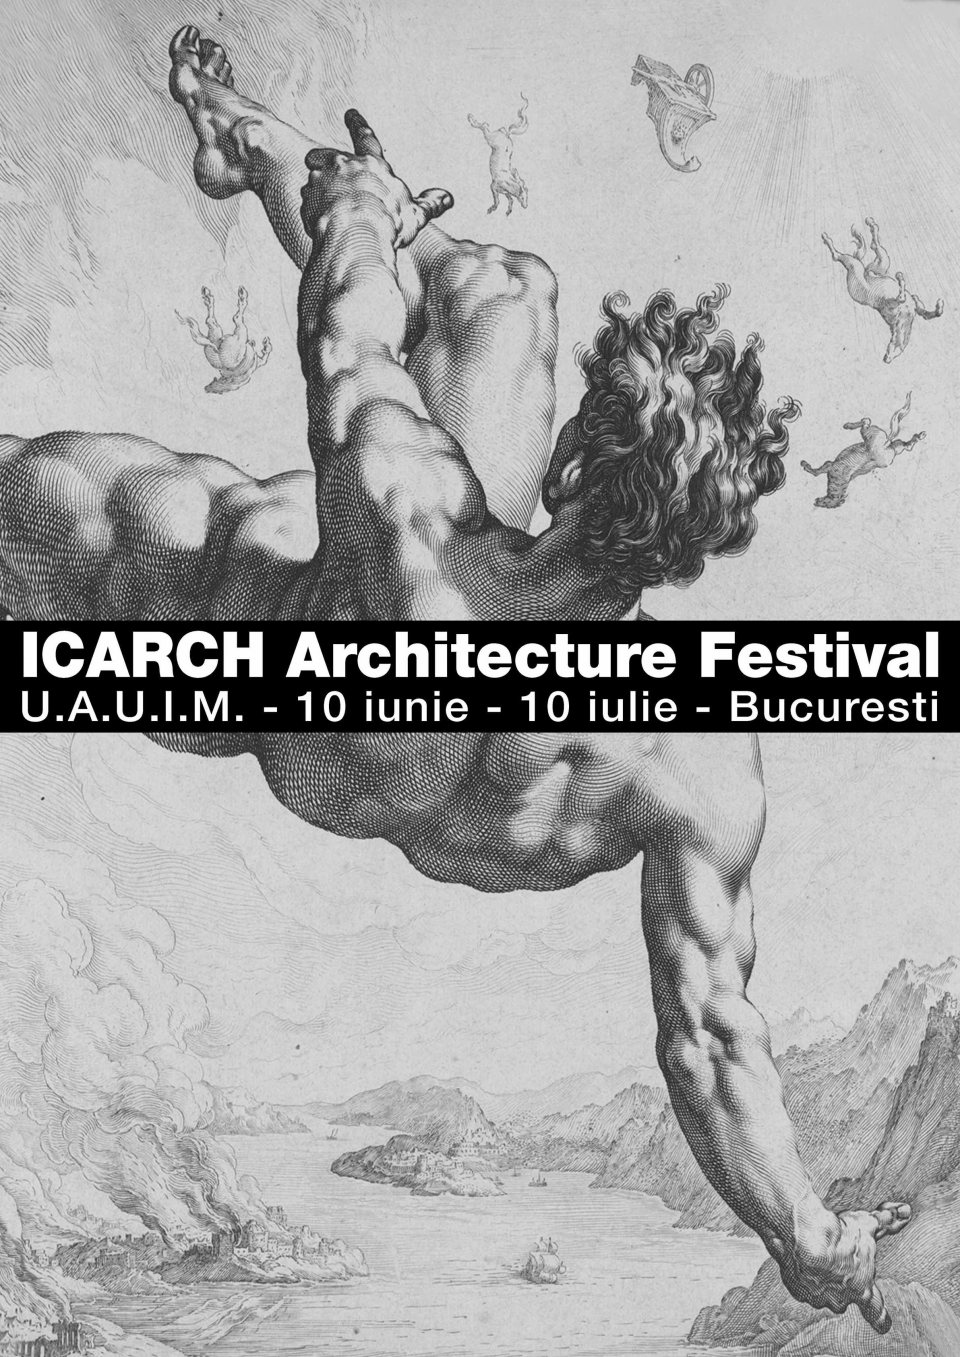 Ketham's Atelier Exhibition at U.A.U.I.M. - ICARCH Architecture Festival 2017